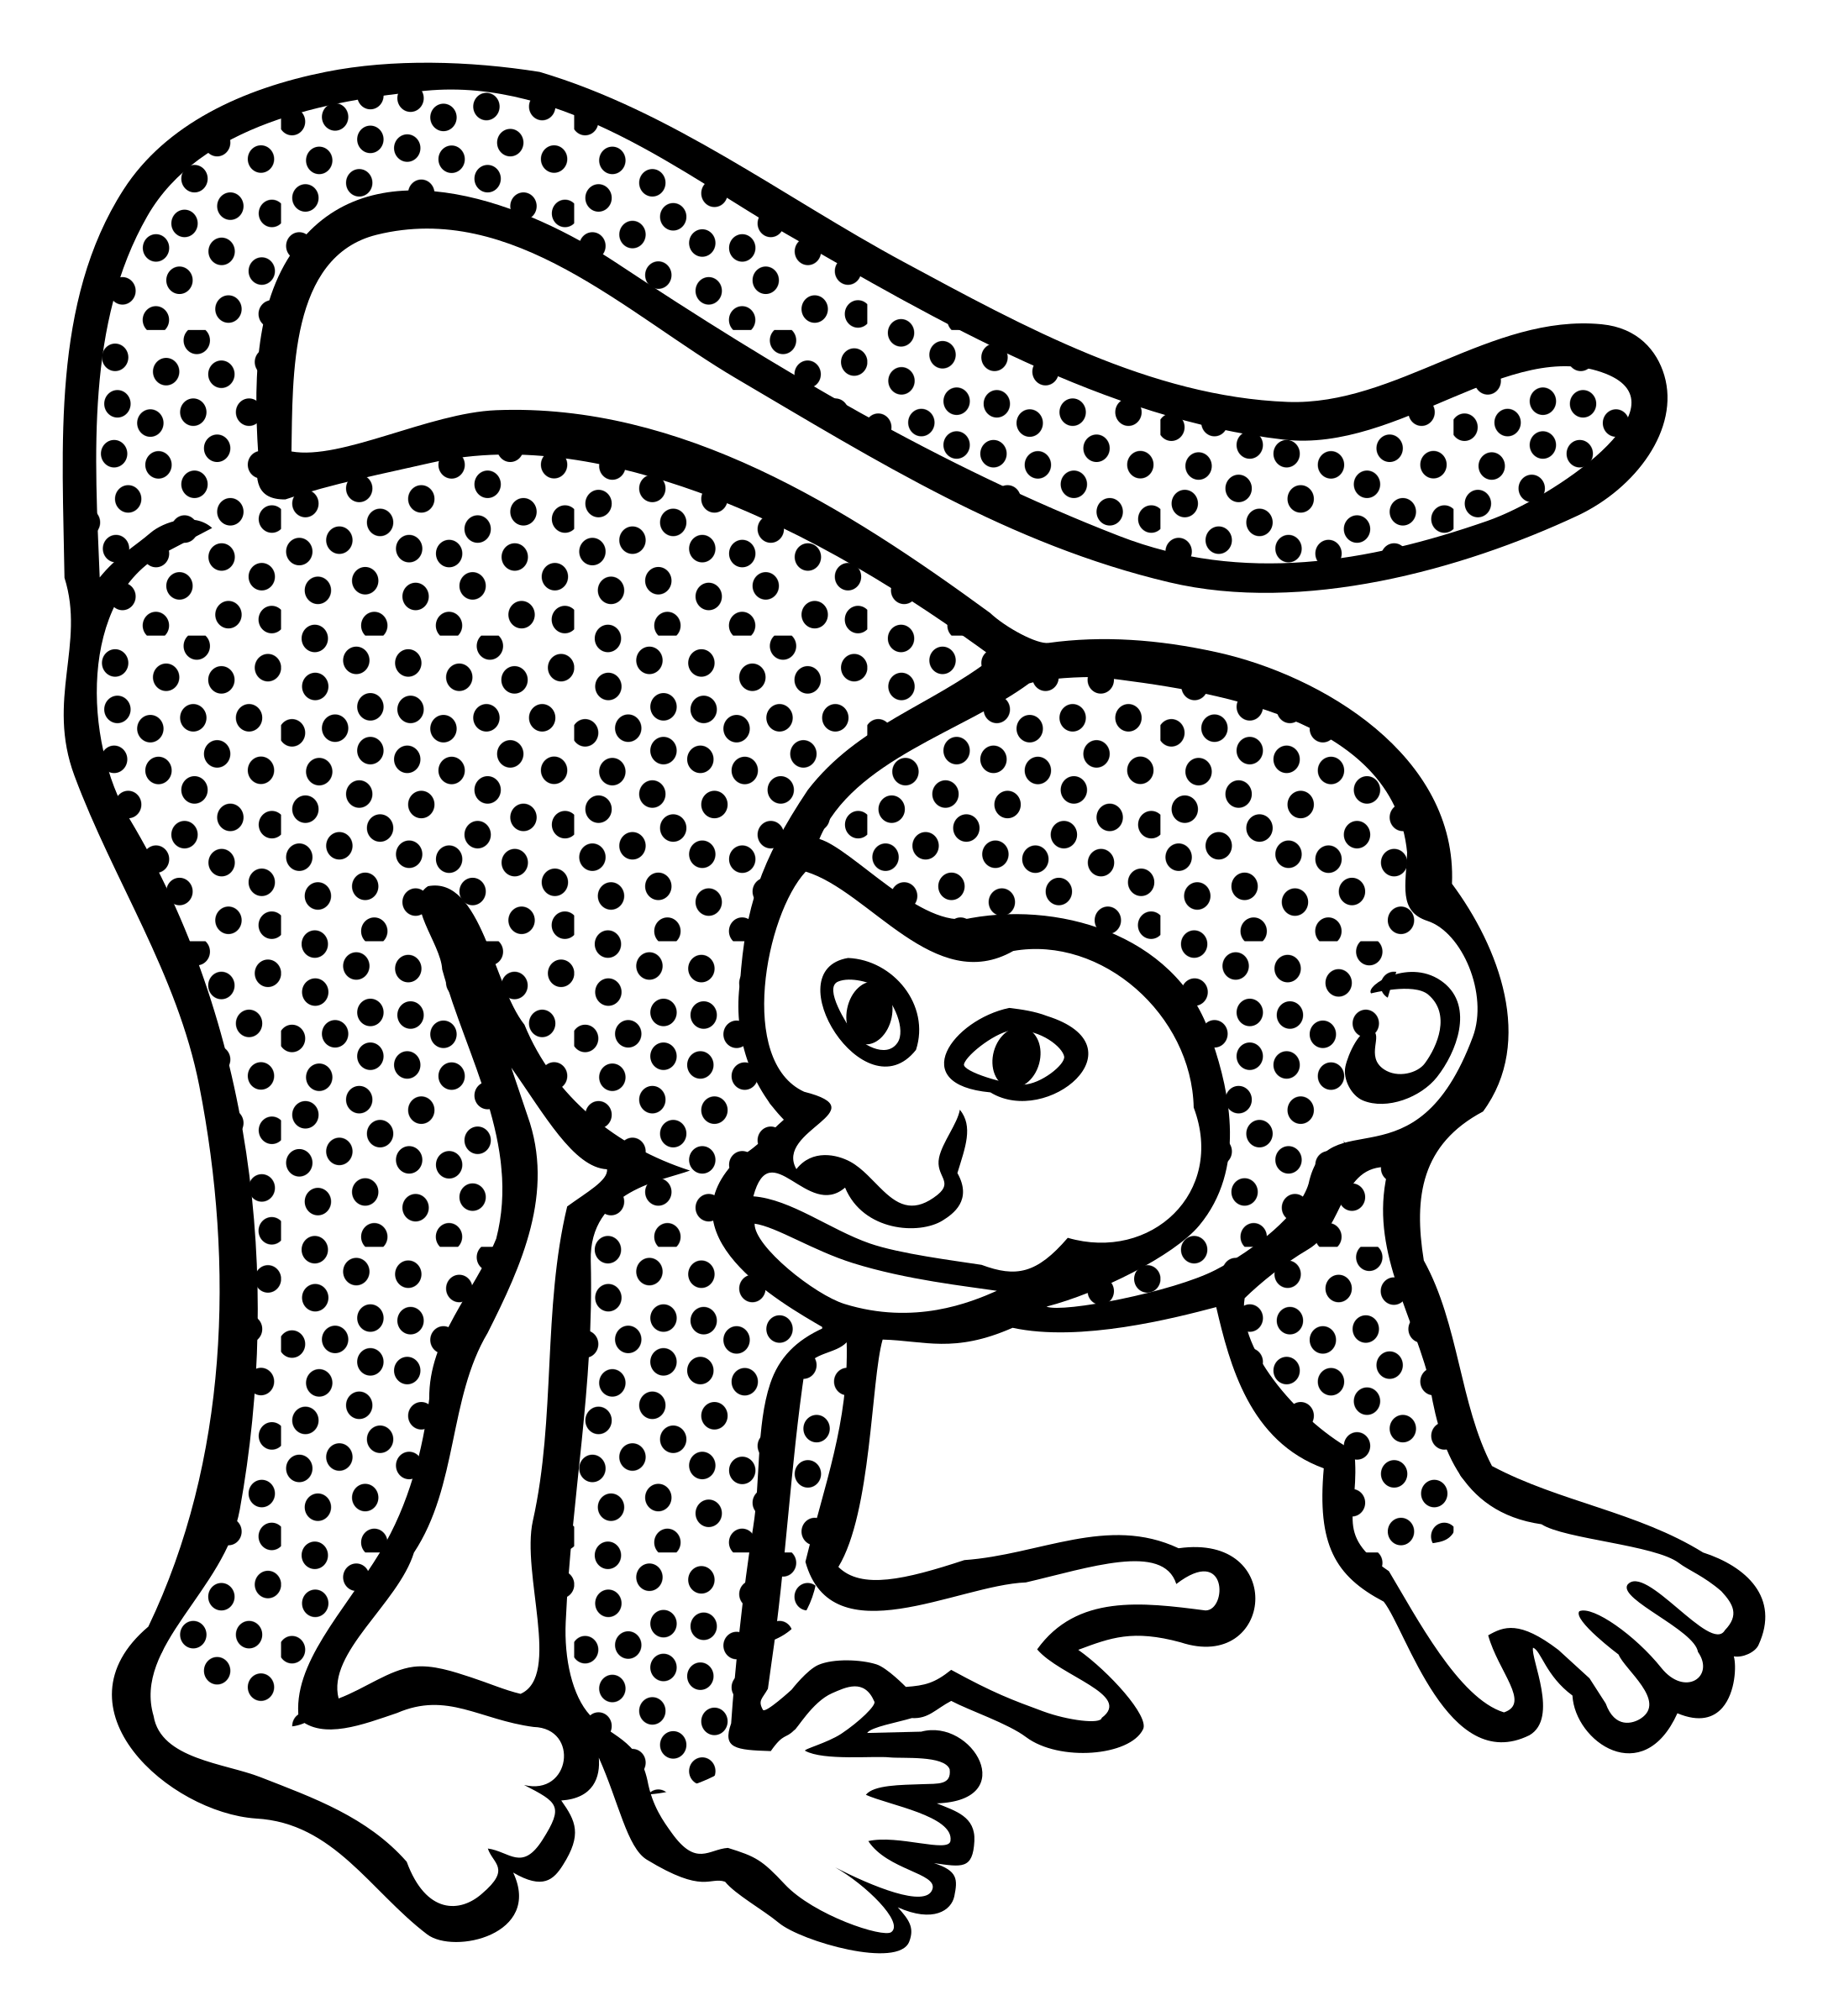 Lineart big image png. Coloring clipart monkey